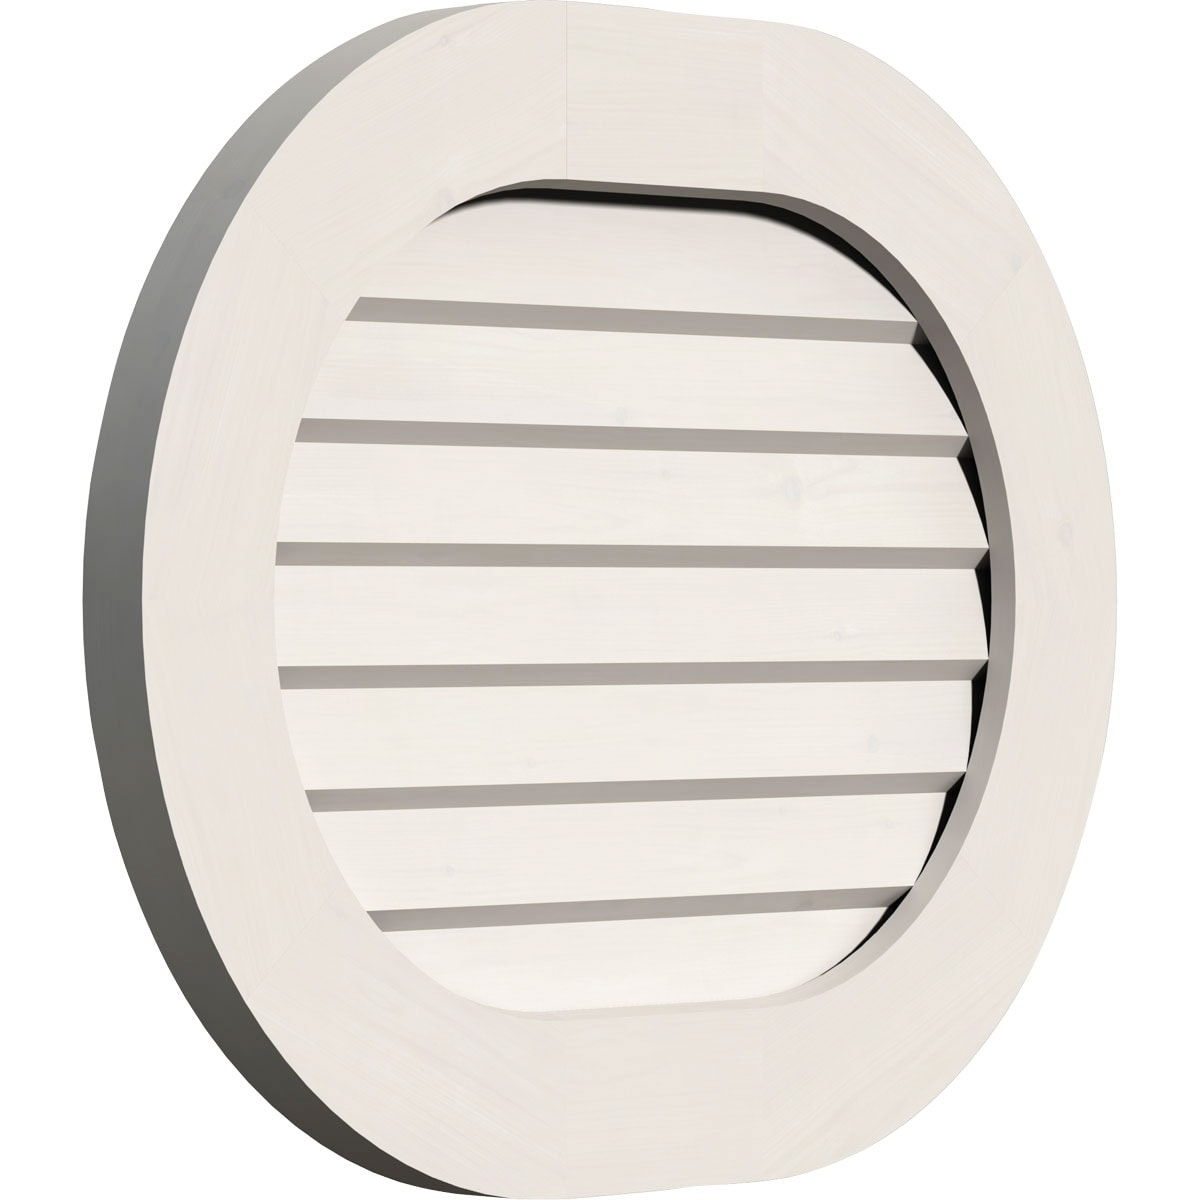 Horizontal Round Ended Gable Vent (Non-Functional / 18W x 12H)